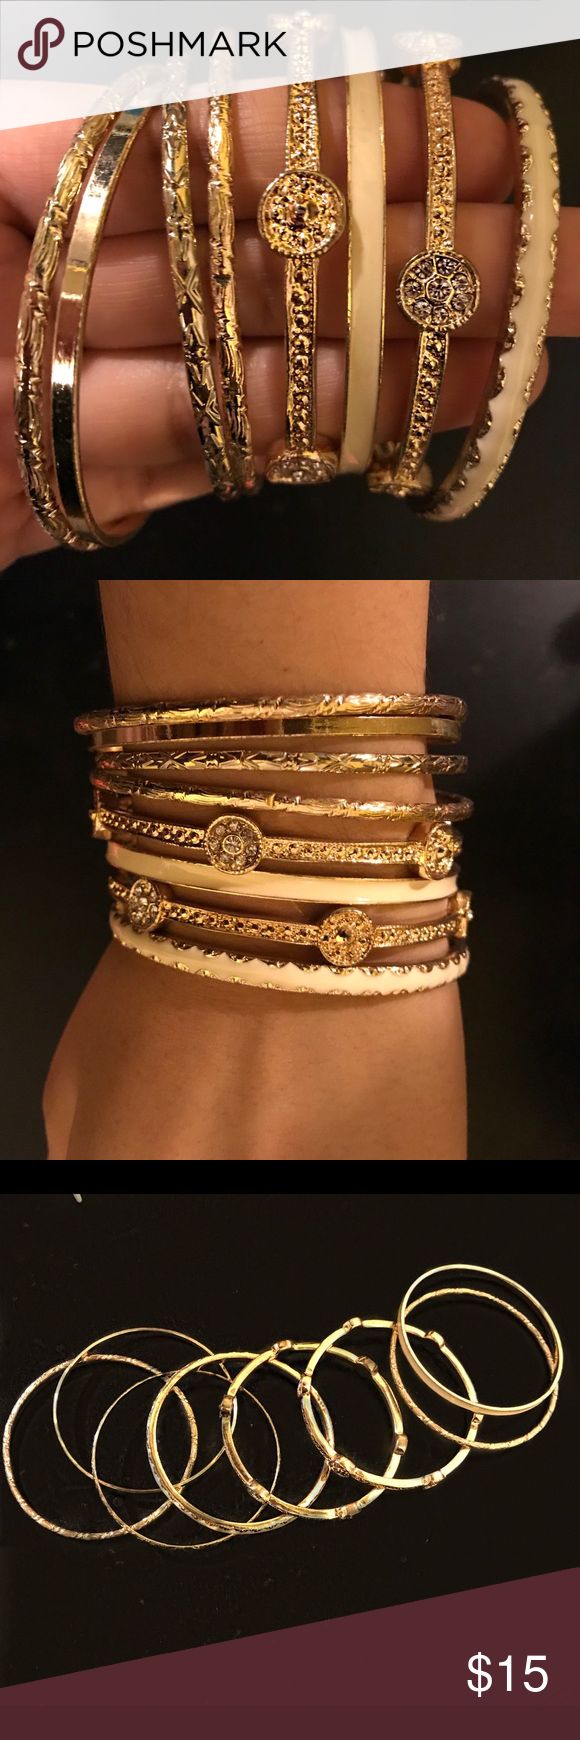 shop bangle vermeil macy image product gold woven bracelet horse in fpx bangles main s bracelets